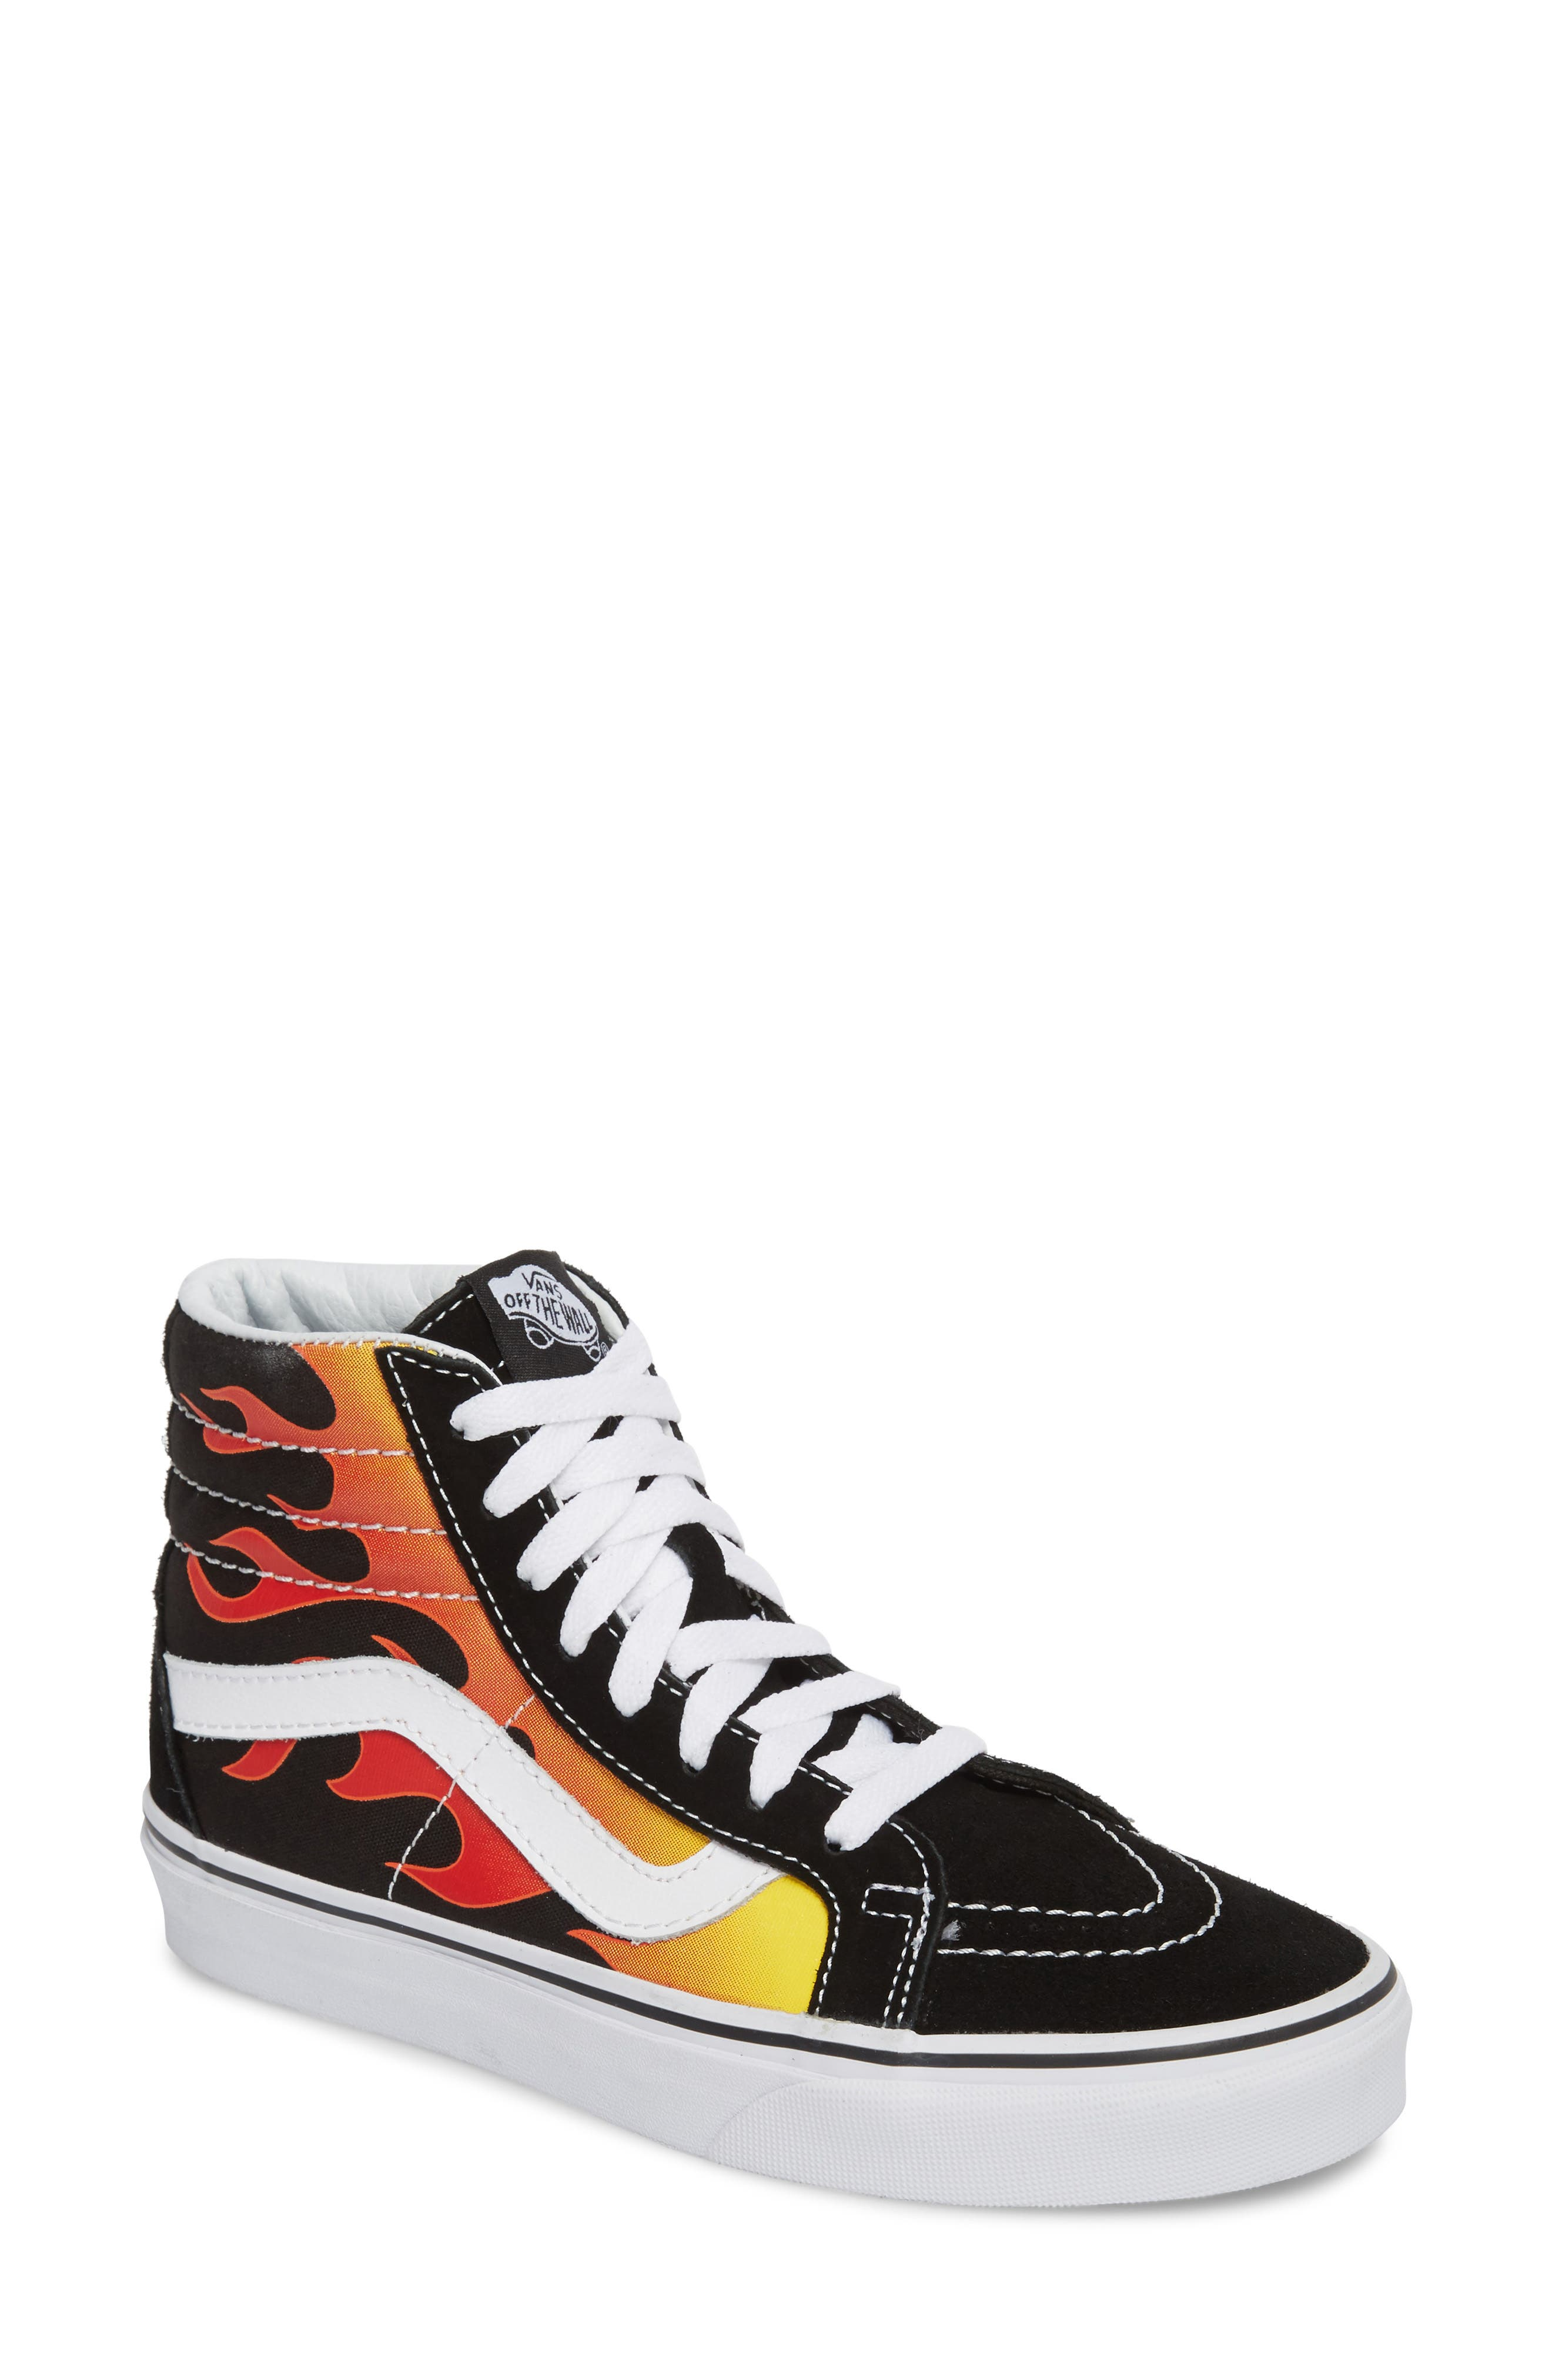 'Sk8-Hi Slim' Sneaker,                         Main,                         color, Black/ Black/ True White